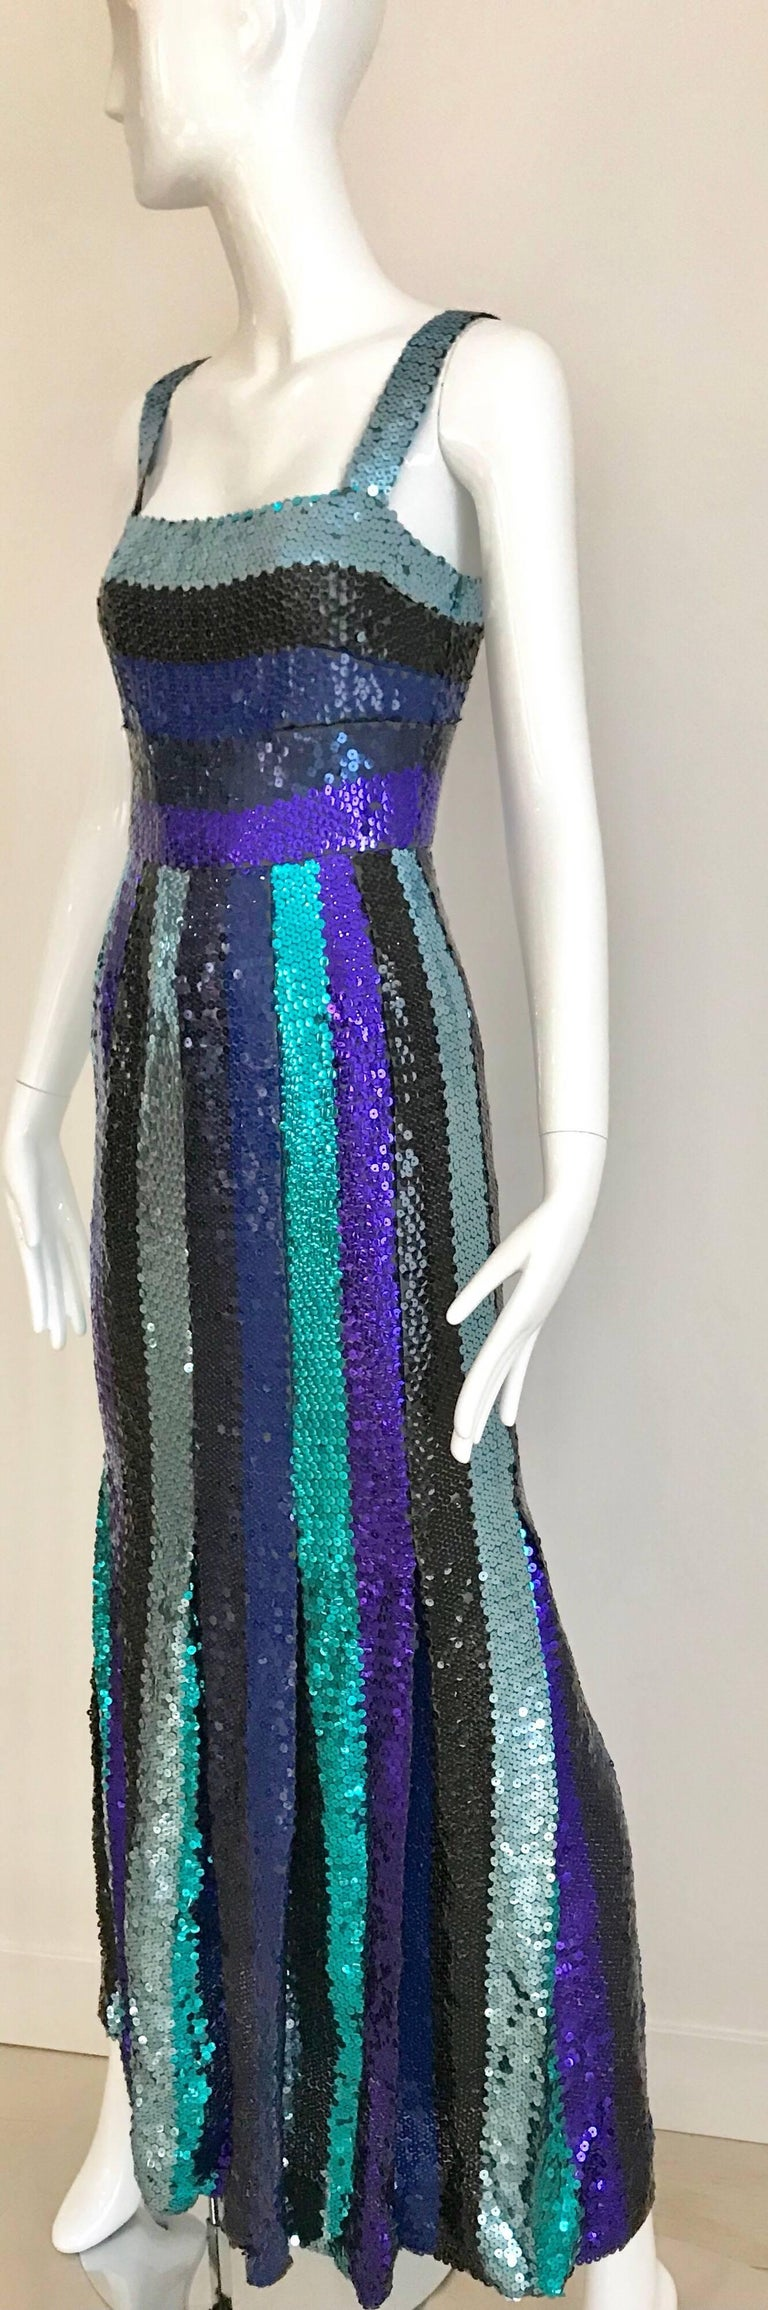 Givenchy Spaghetti Strap Blue Sequins Cocktail Dress, 1960s  In Good Condition For Sale In Beverly Hills, CA